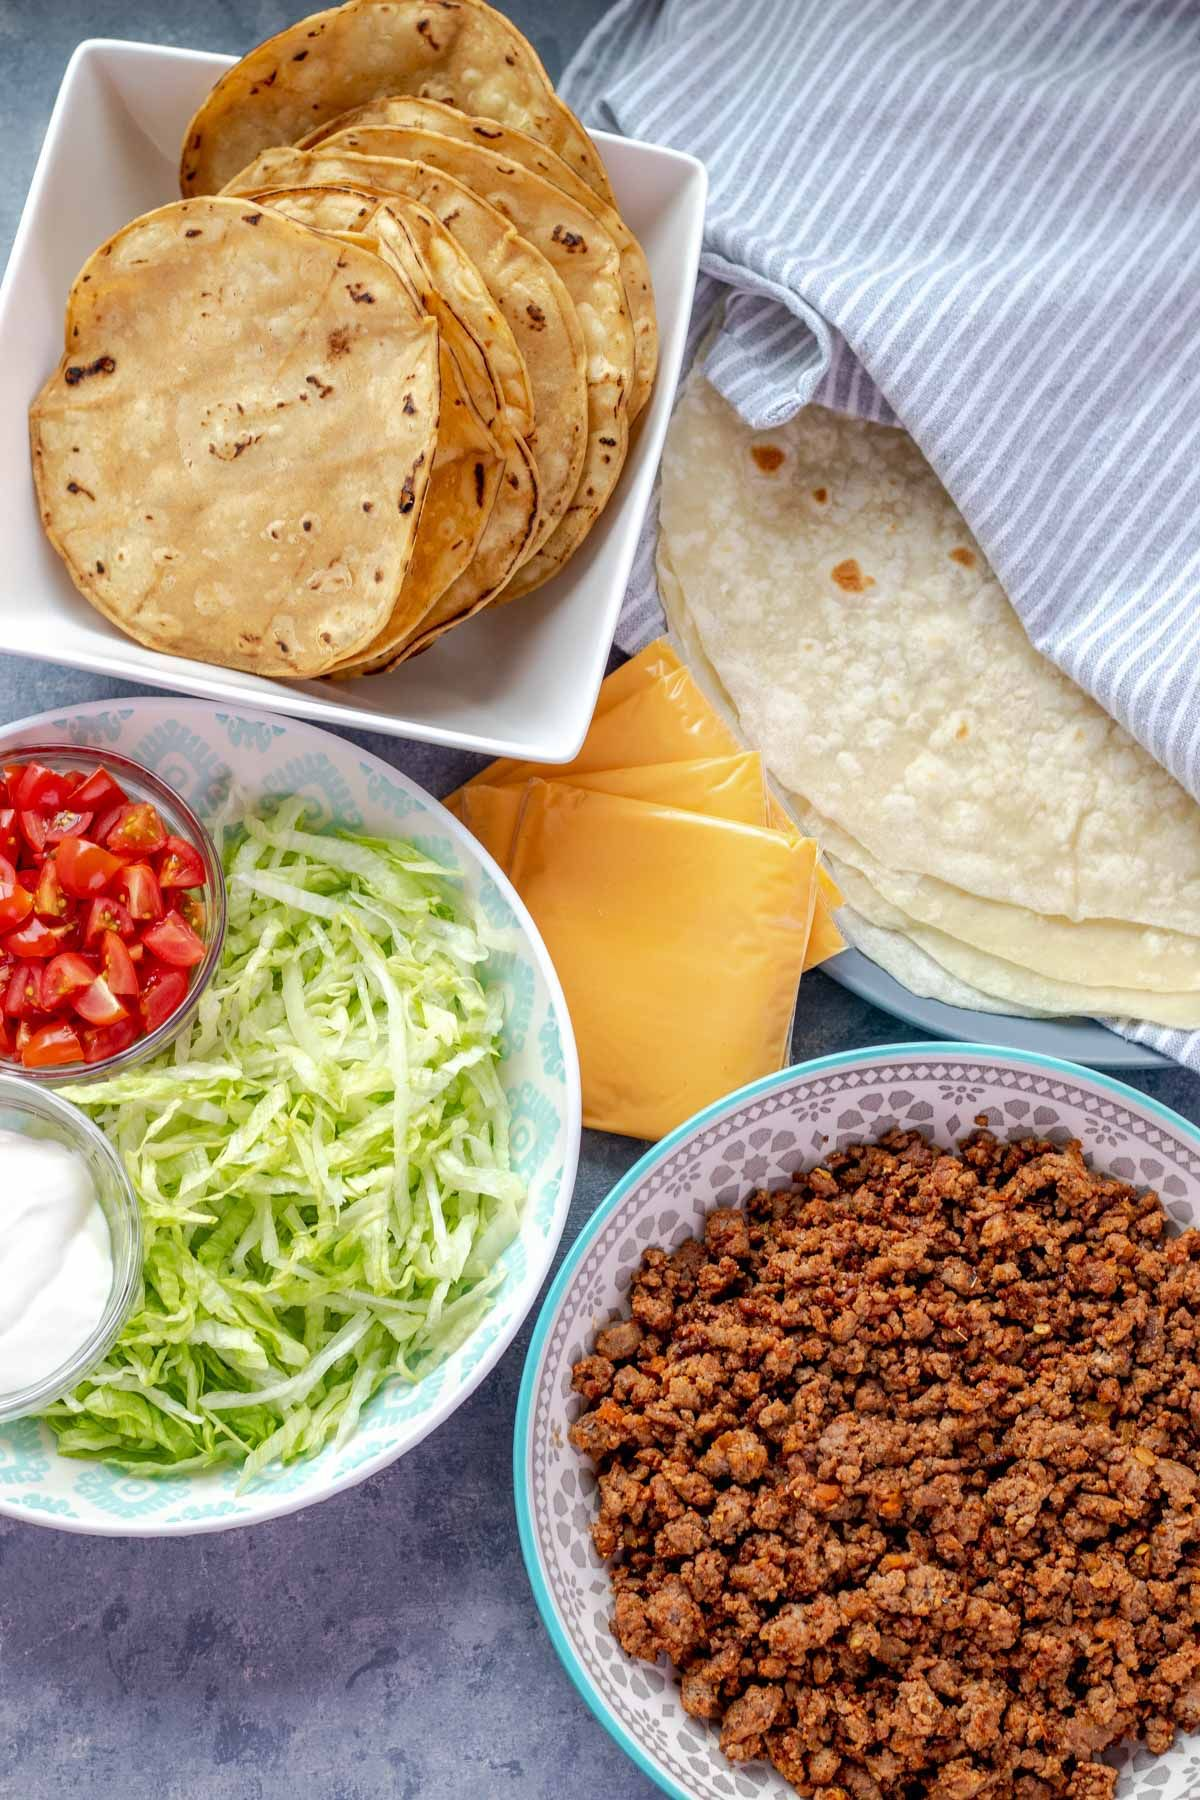 All of the ingredients to make homemade Crunchwrap Supremes. Get the full recipe at www.whippeditup.com  #crunchwrapsupreme #tacos #tacotuesday #mexican #homemadetakeout #eatrealfood #whippeditup #recipe #copycatrecipe